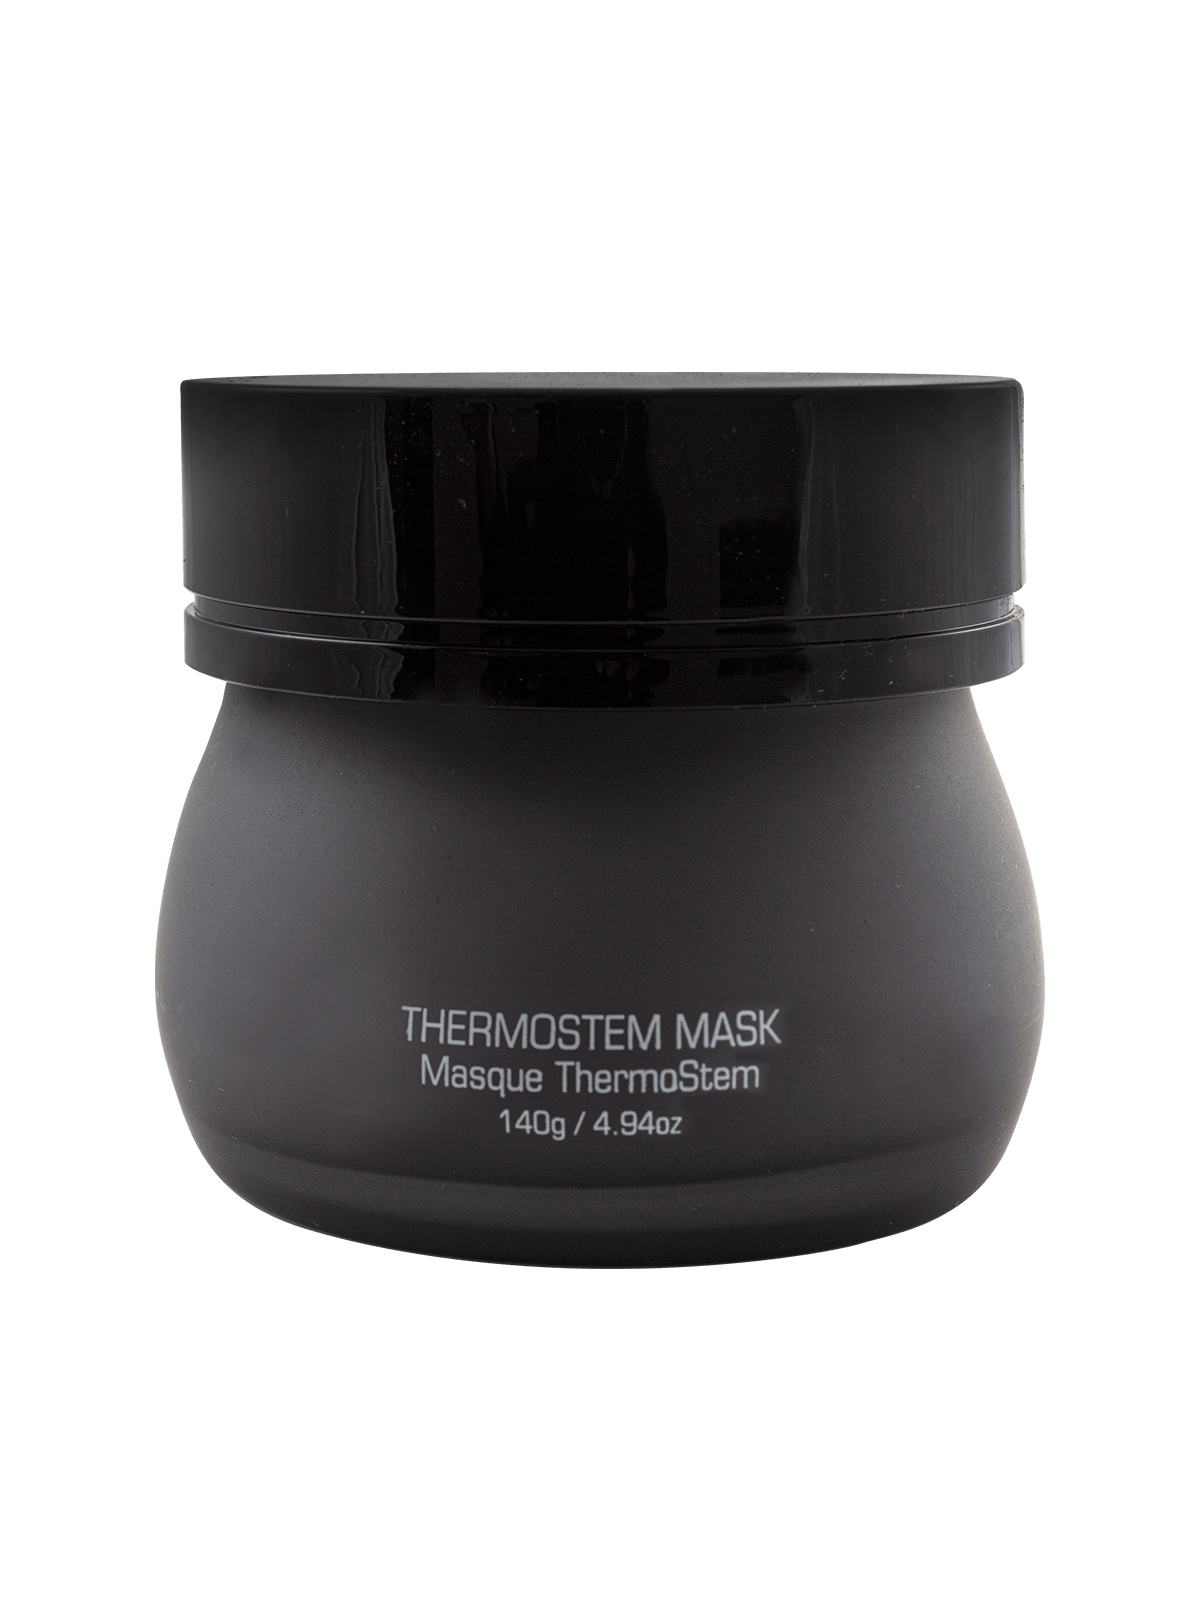 Thermostem Mask back